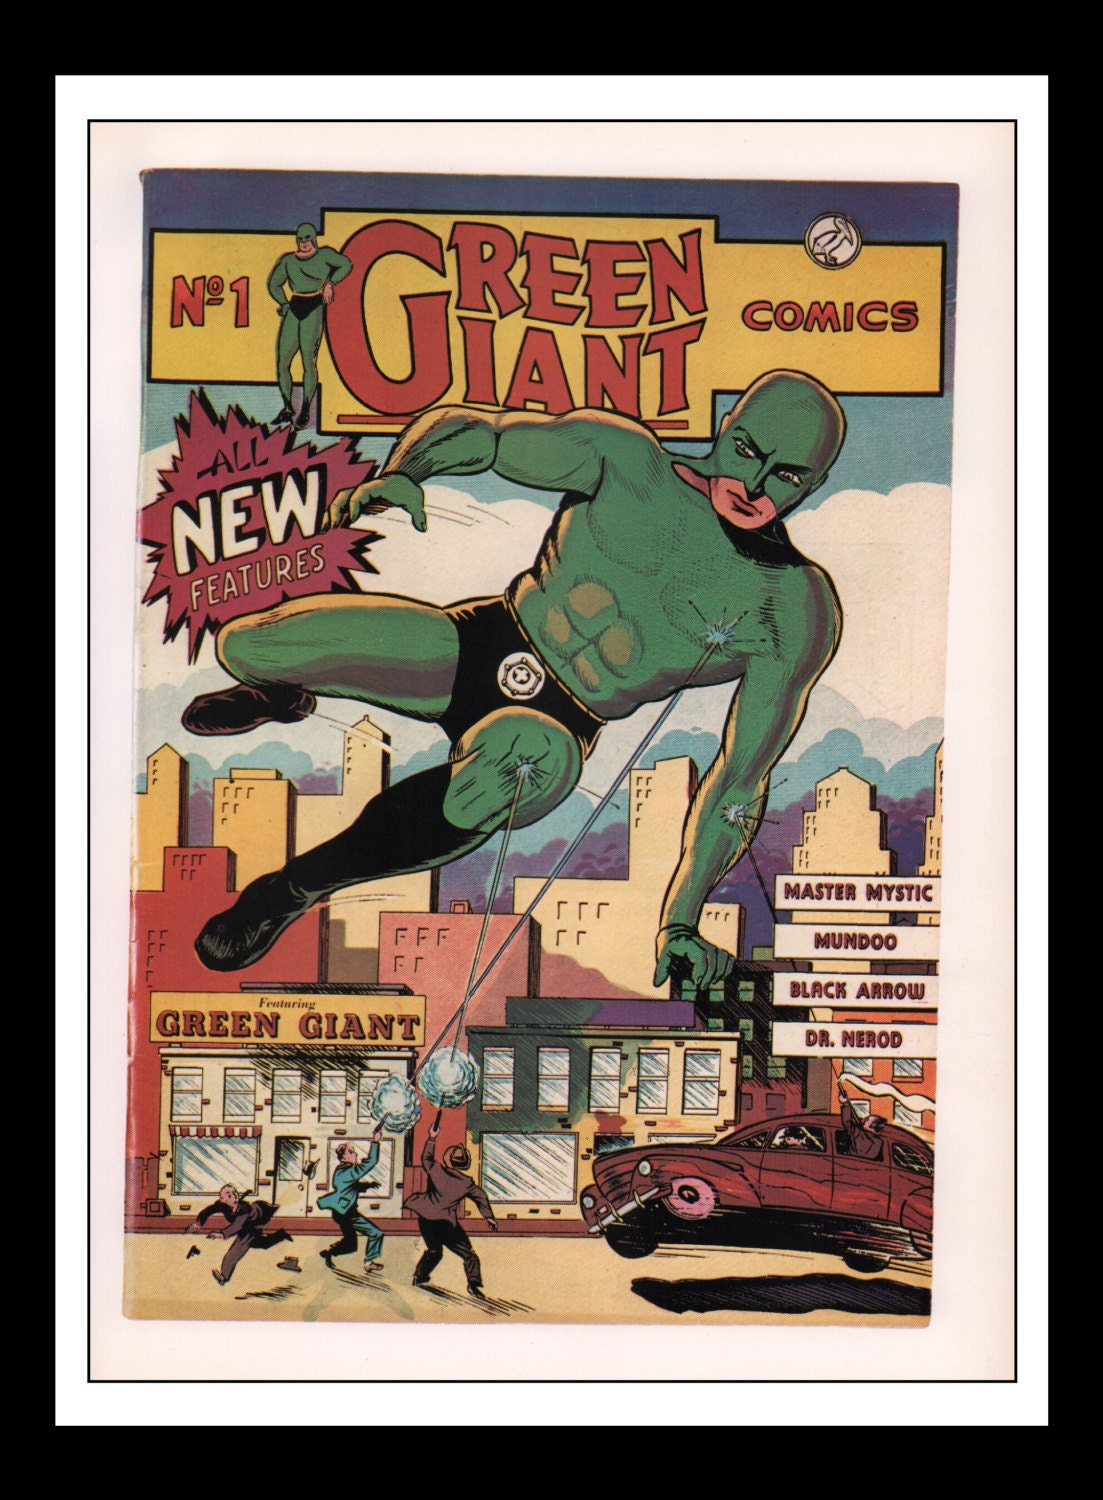 Classic Comic Book Cover Prints : Vintage print ad comic book cover green giant comics